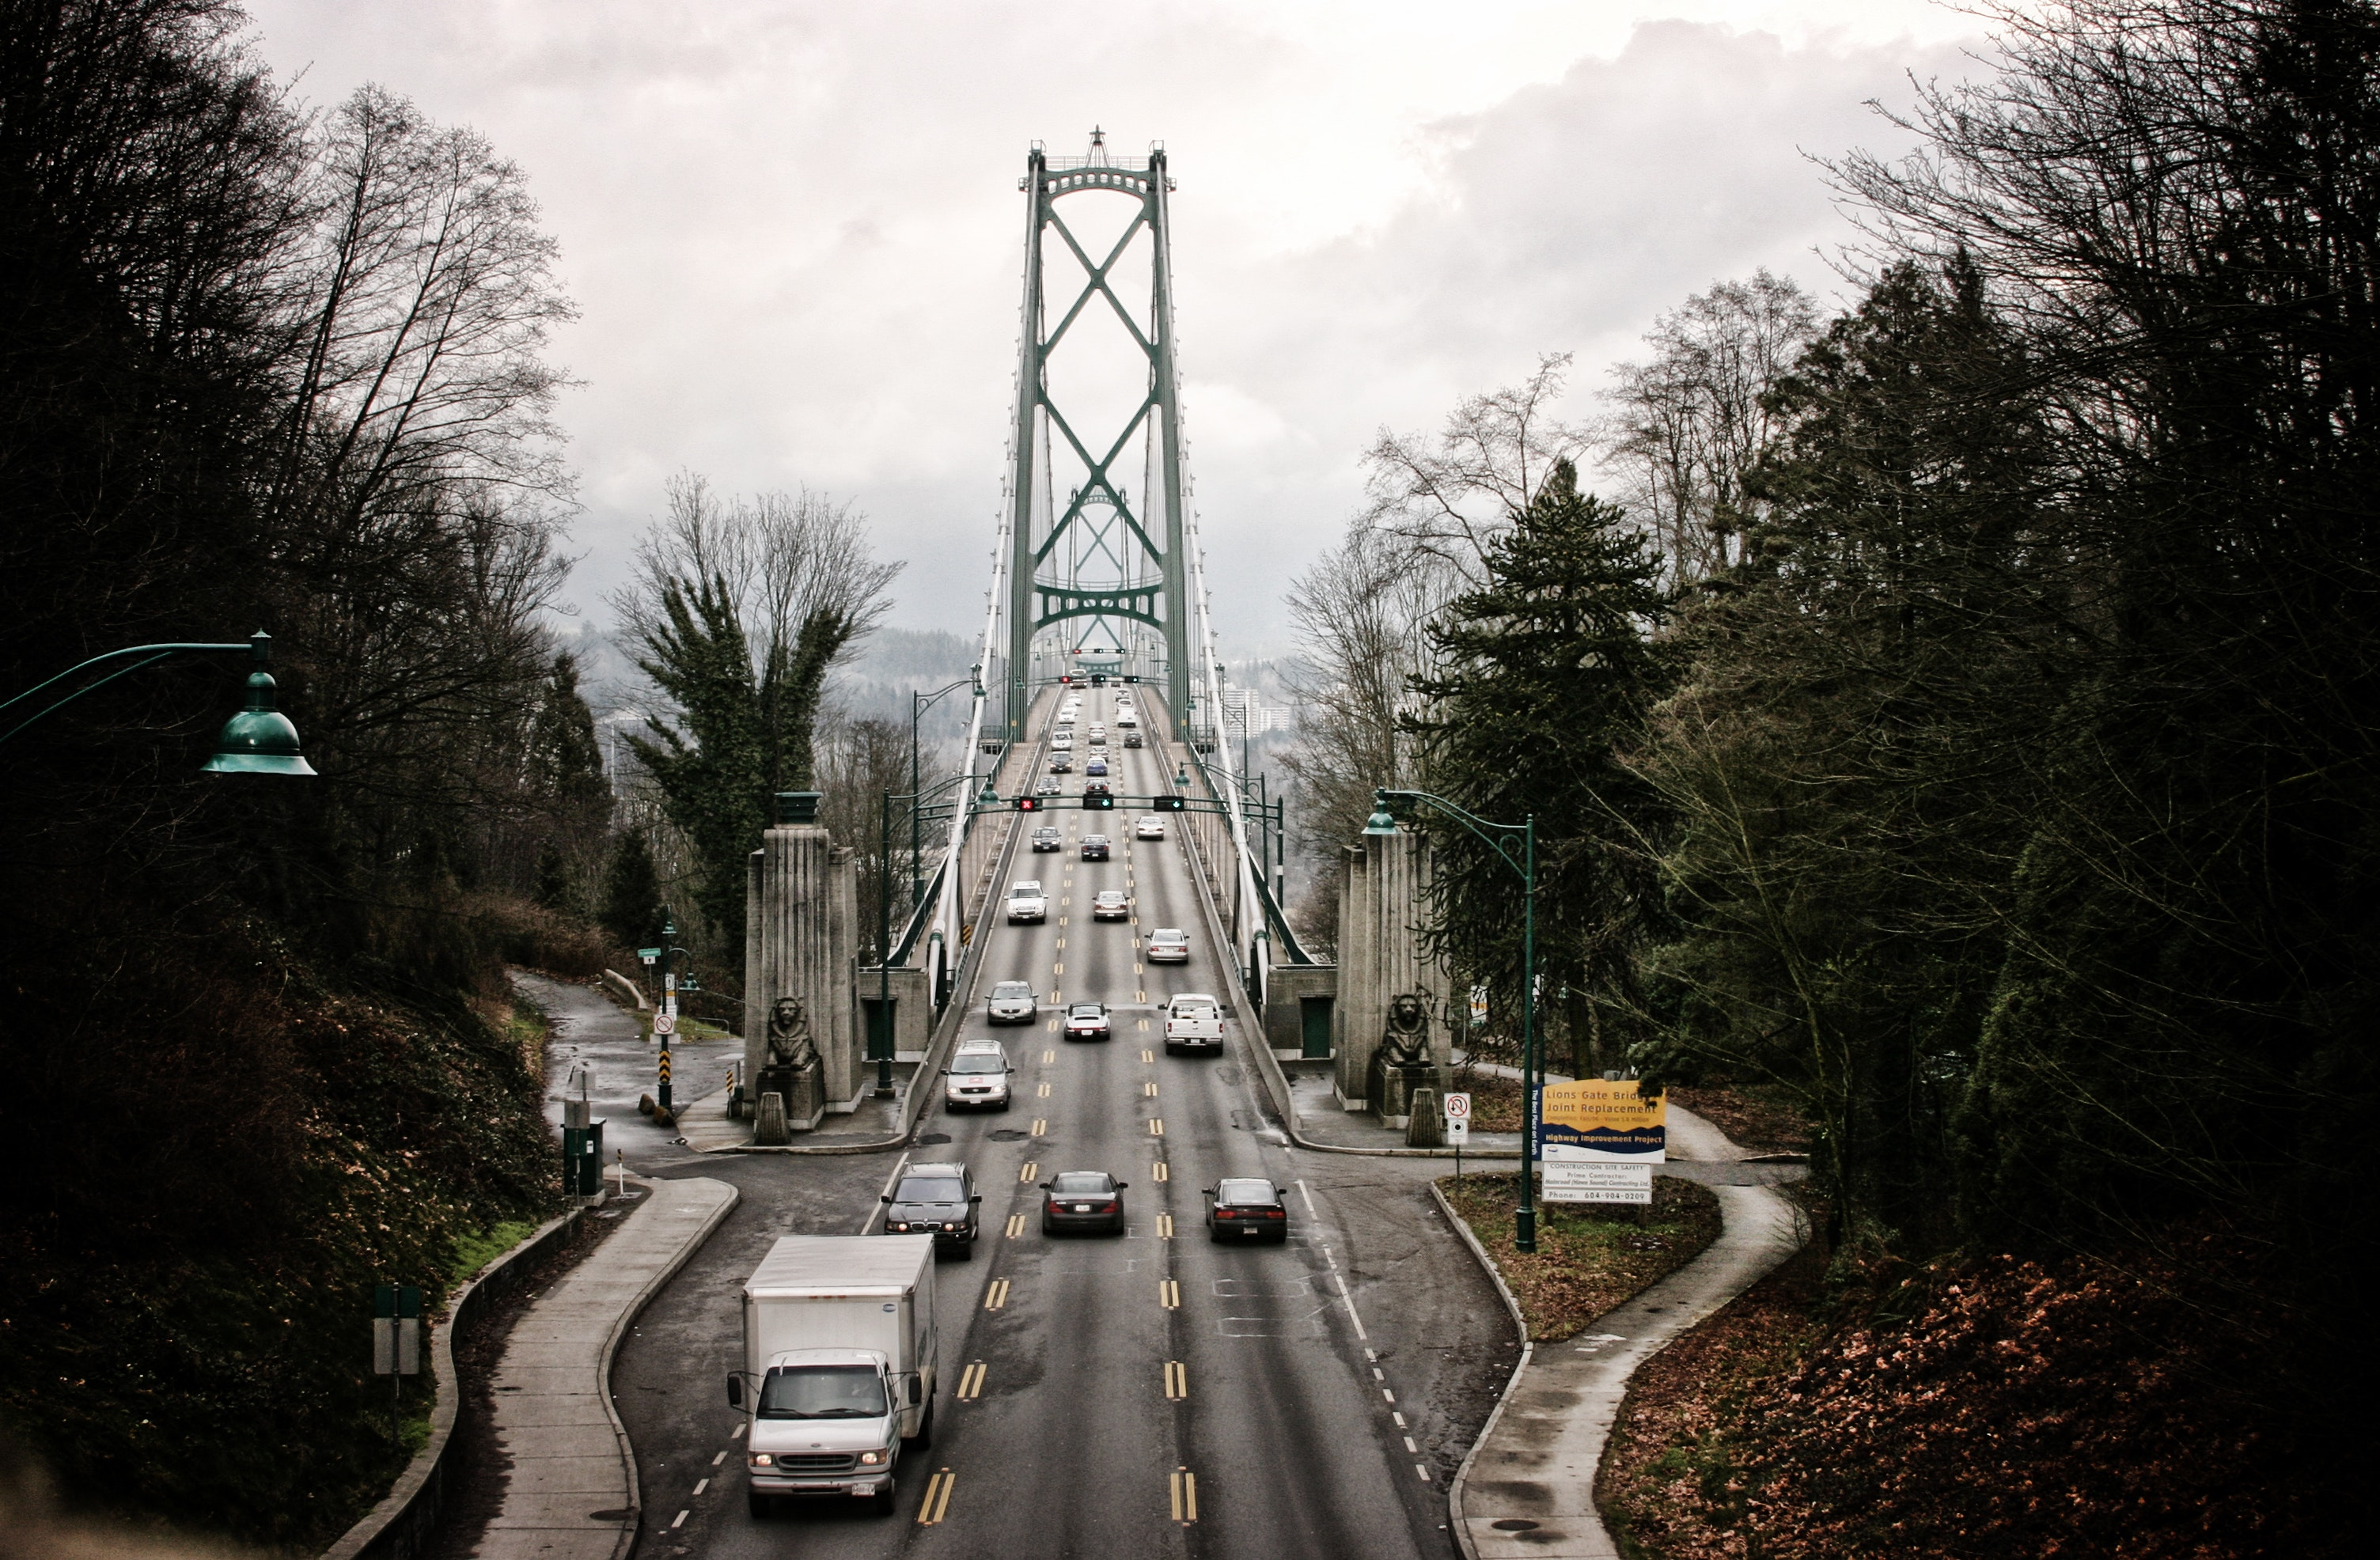 Traffic flowing over a bridge during cloudy weather